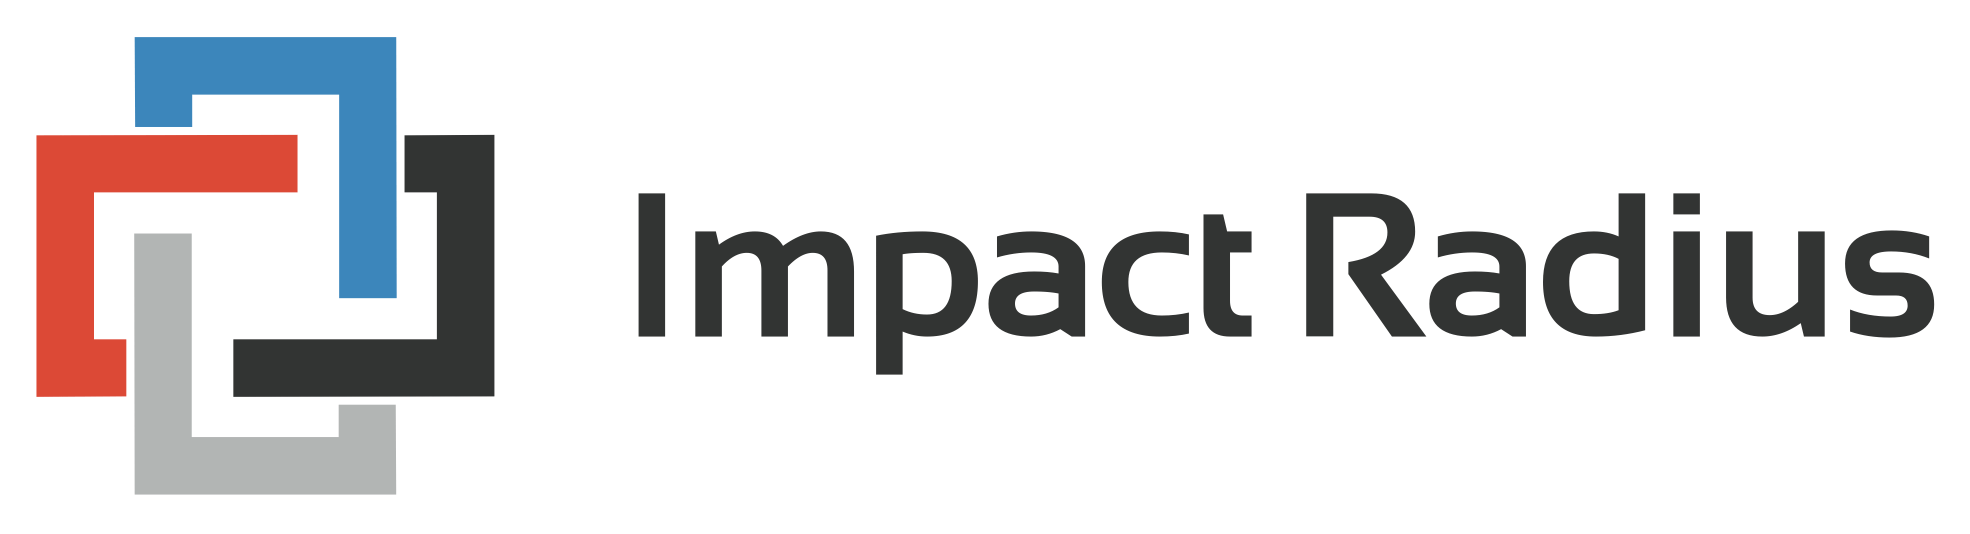 impact radius logo online affiliate marketing program